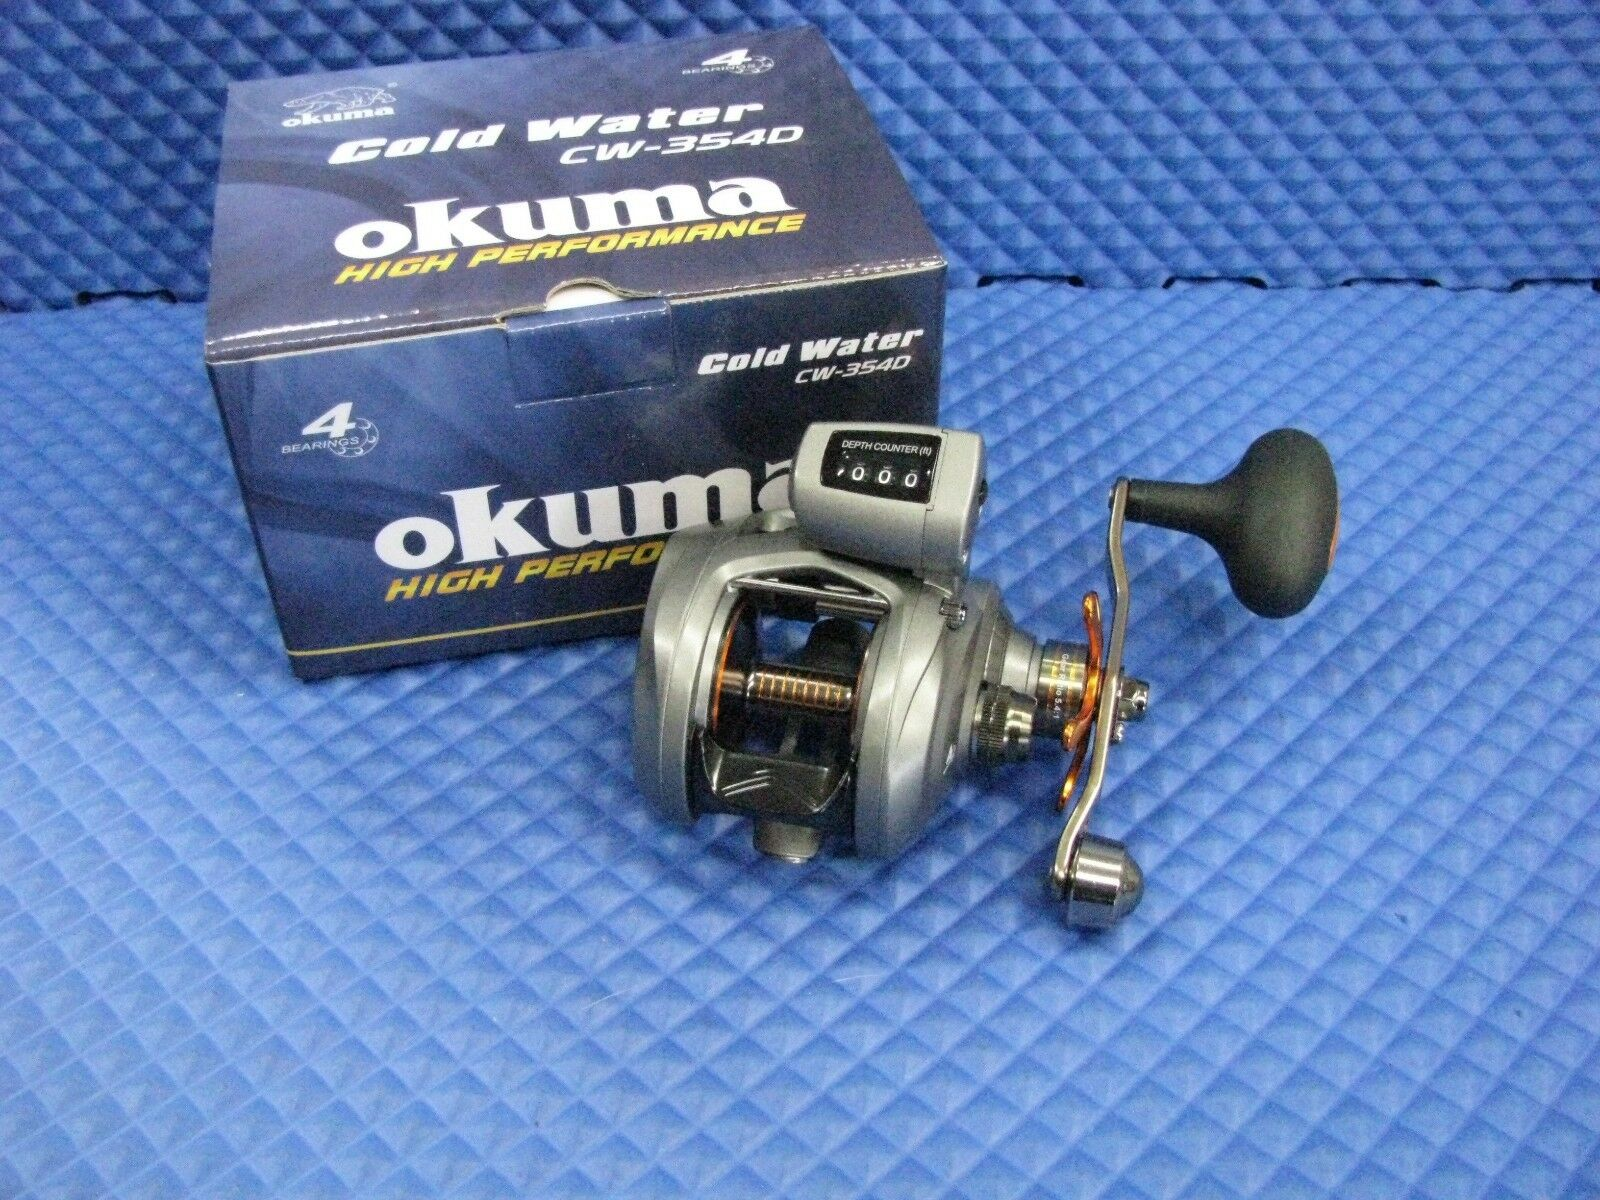 Okuma Cold Water Low Profile Line Counter Reel CW 354D New In Box